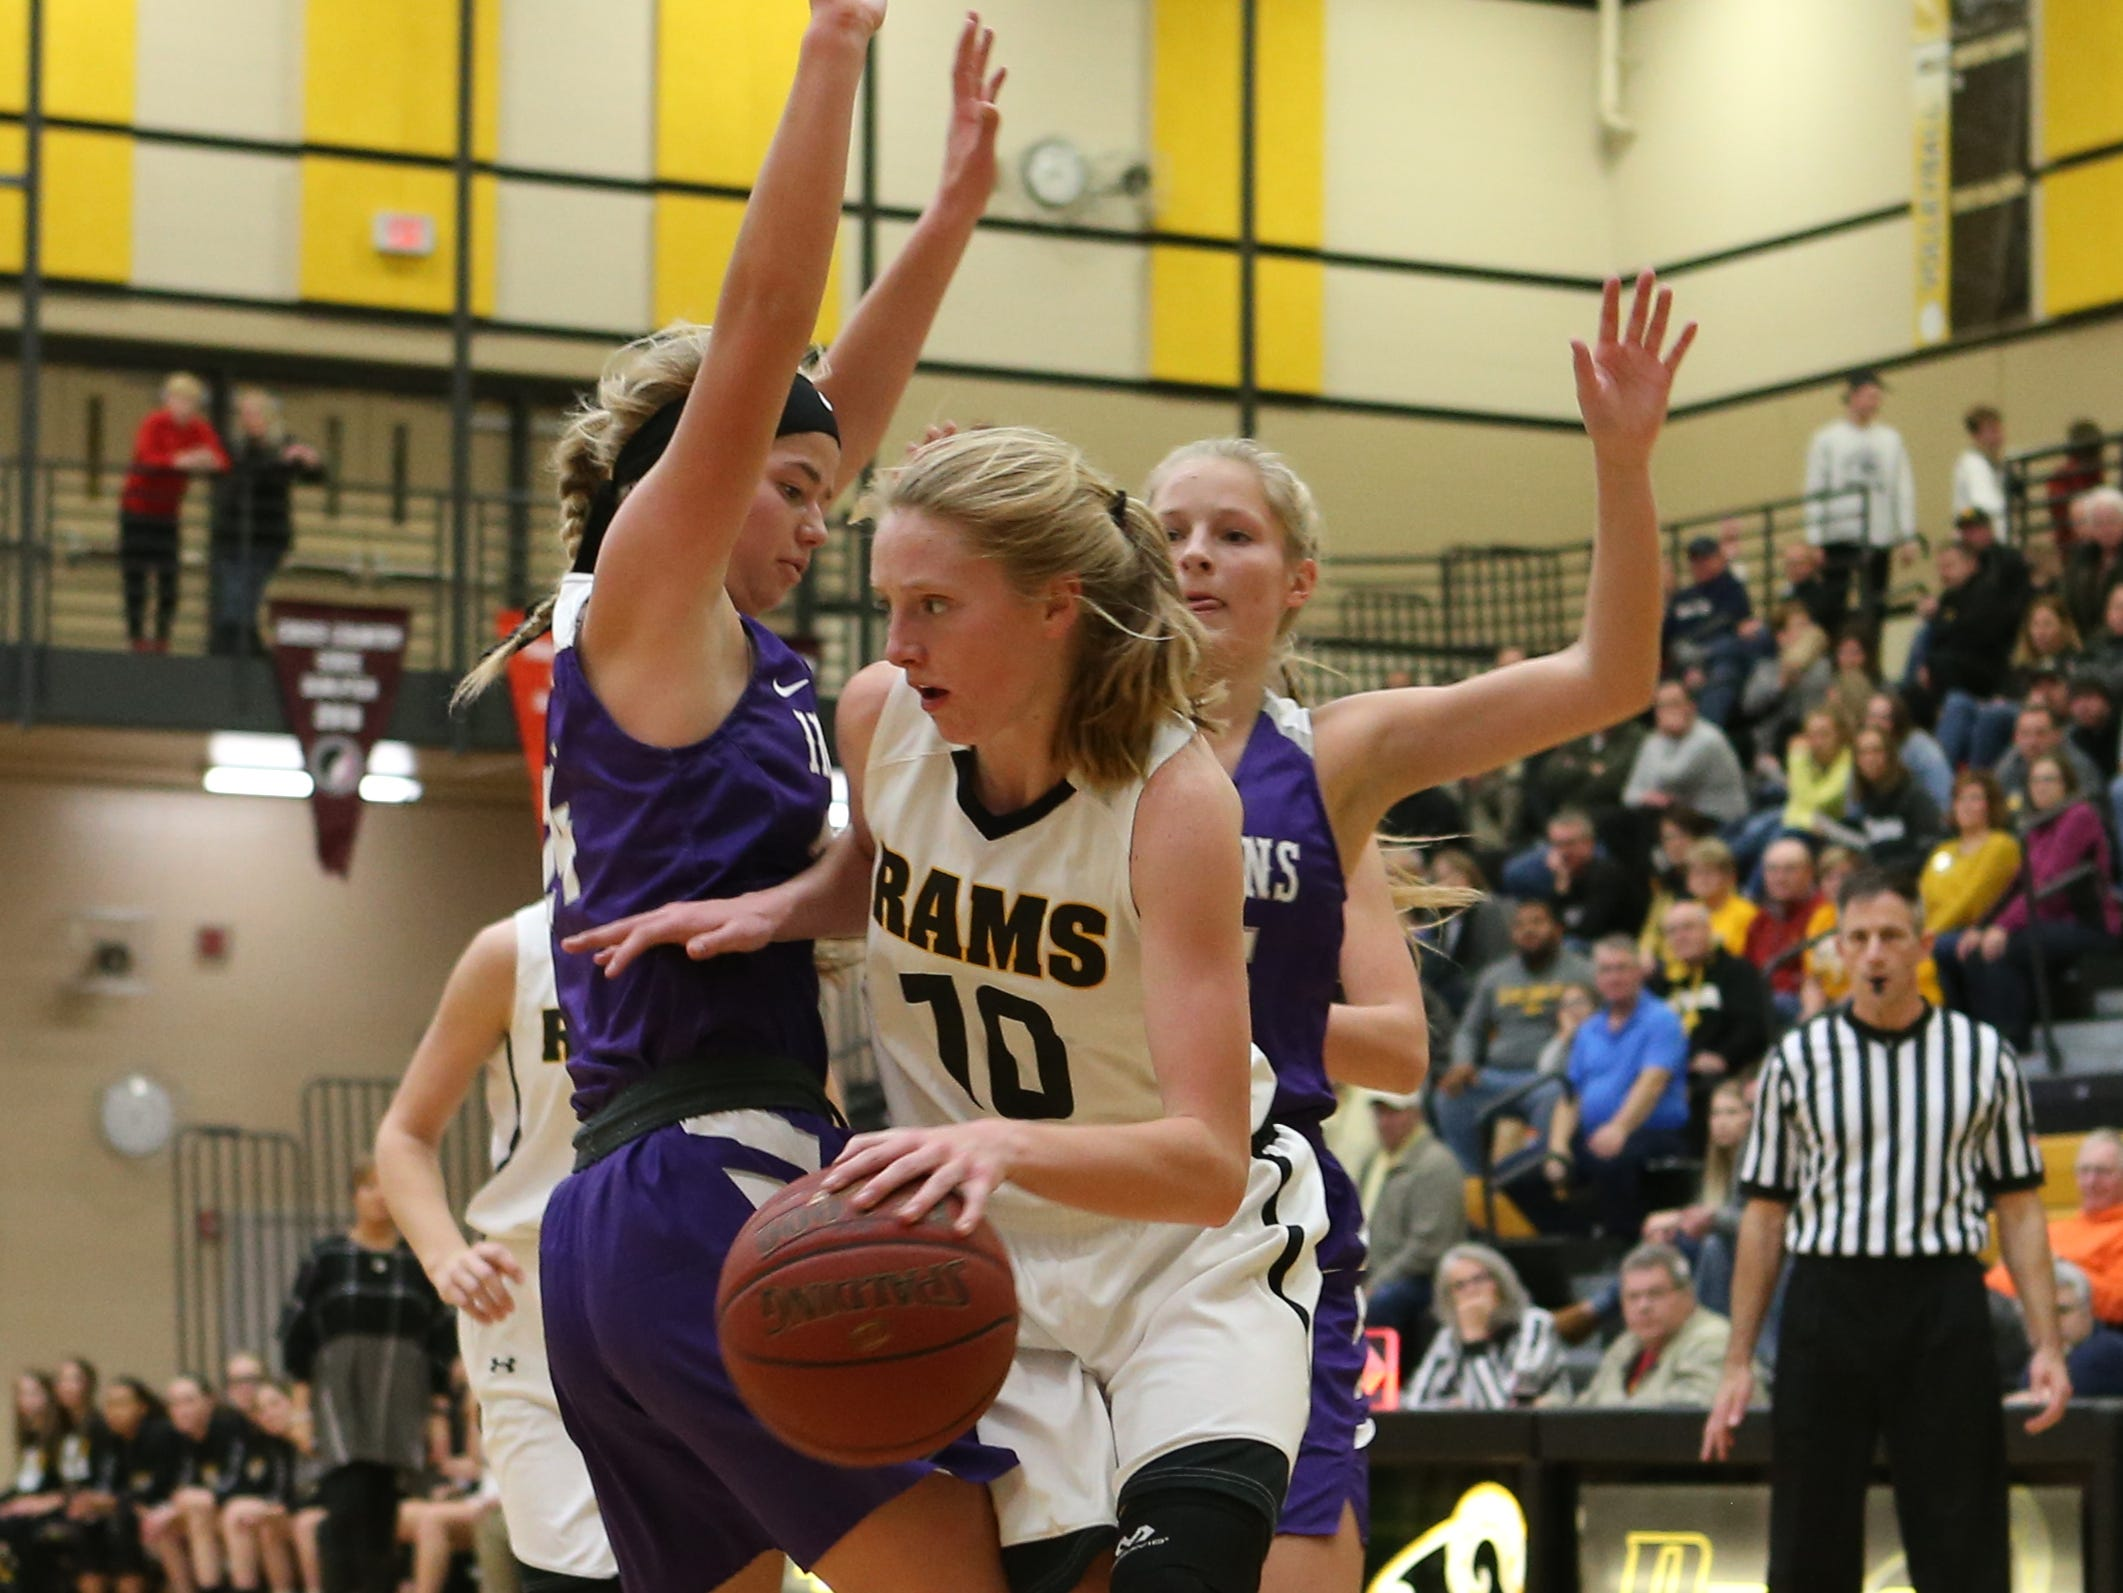 Nov 20, 2018; Pleasant Hill, IA, USA; Southeast Polk Rams Grace Larkins (10) drives baseline during their game with the Indianola Indians at Southeast Polk Gymnasium.